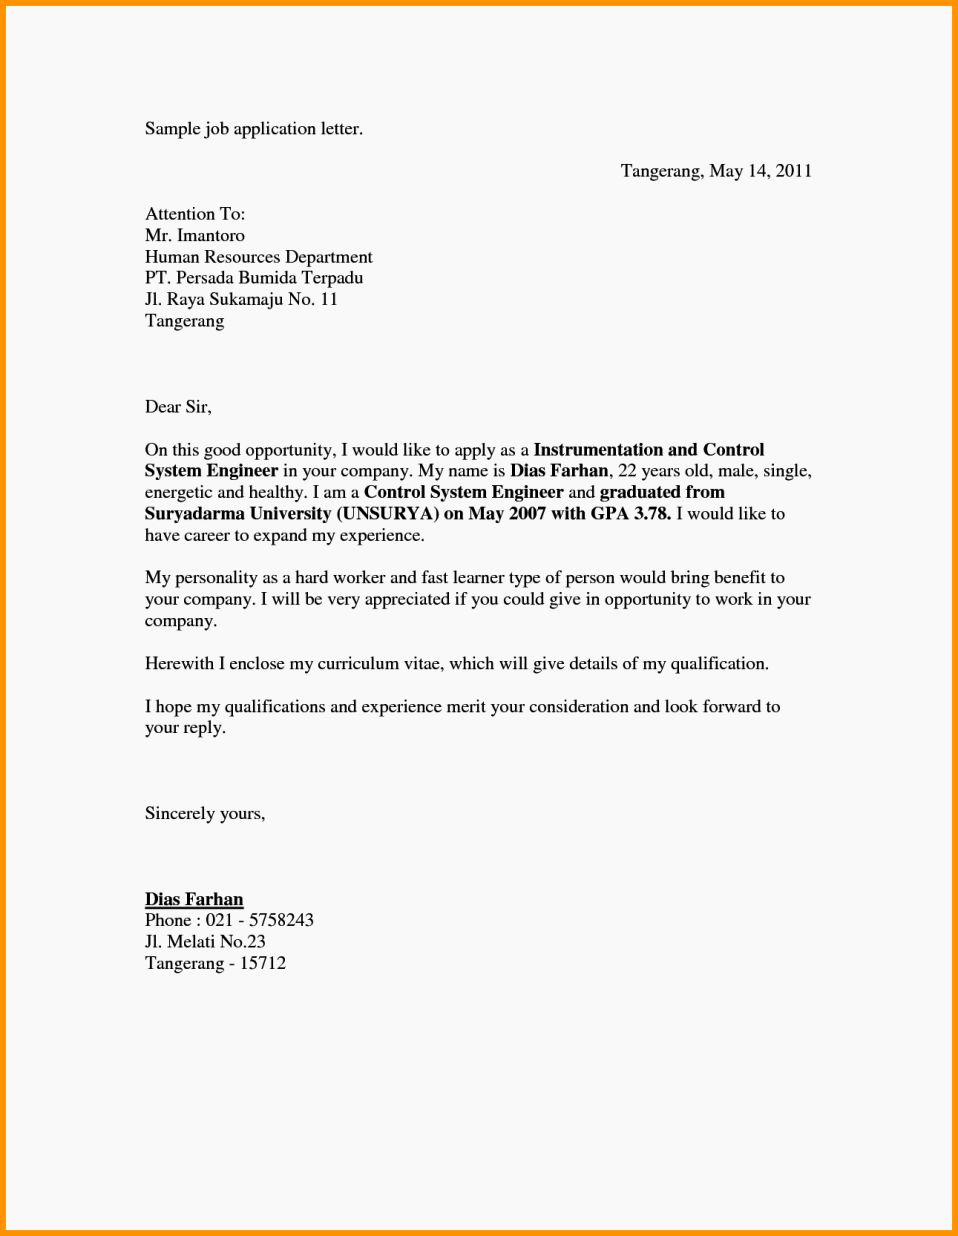 Cover Letter for Employment Beautiful Application Cover Letter for Job for Fresher